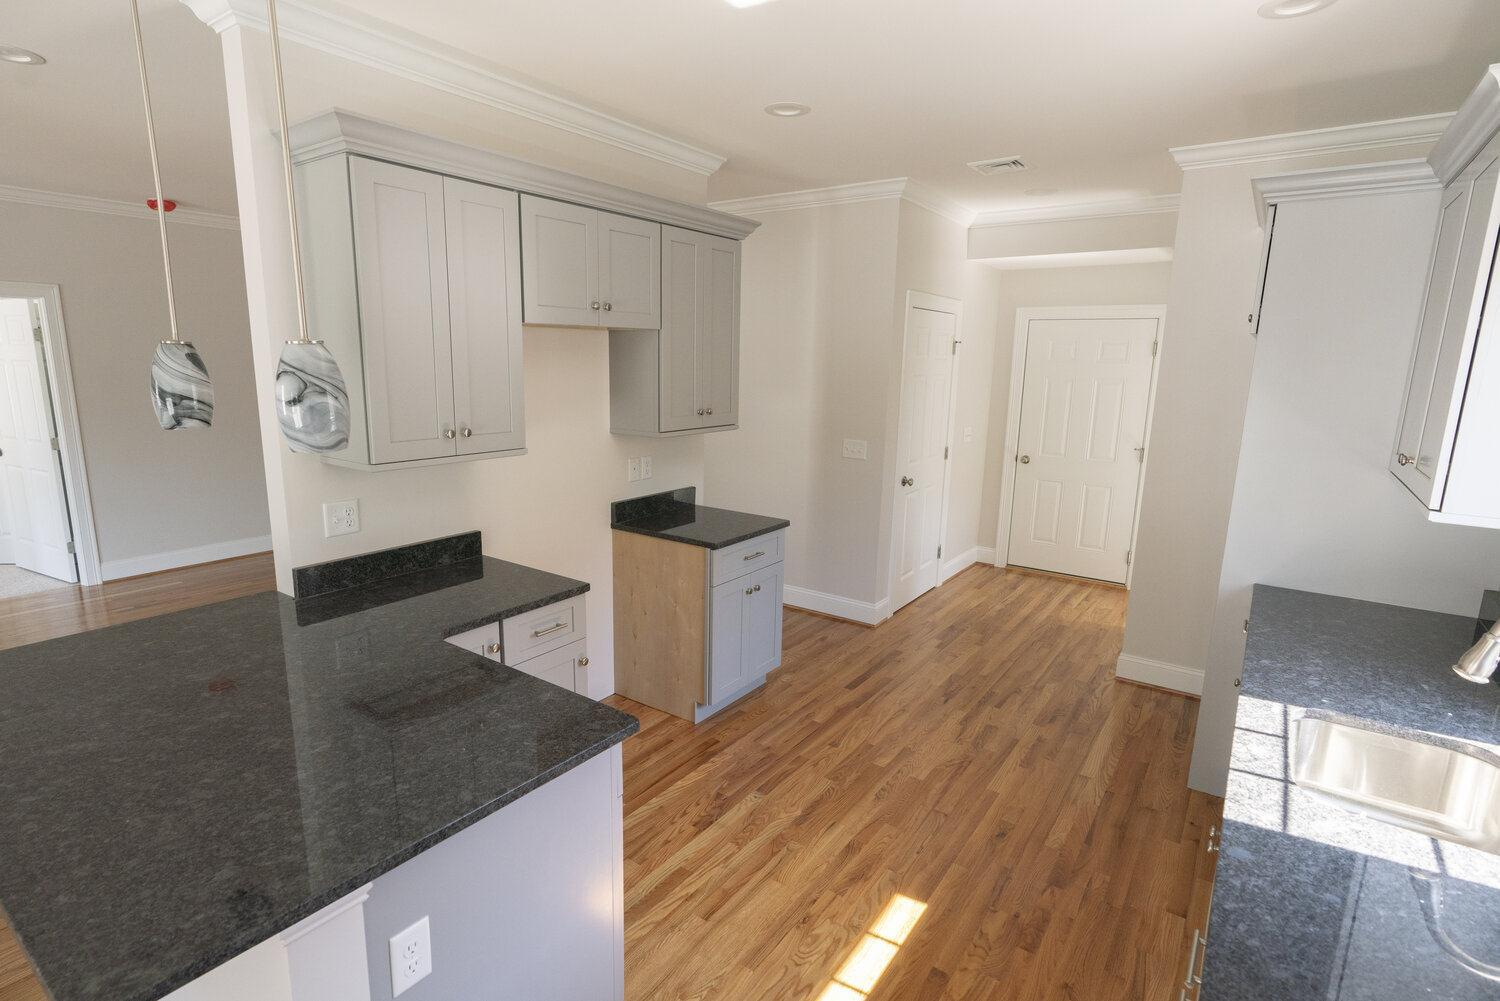 Kitchen featured in The Dover By Bidwell Village in Hartford, CT